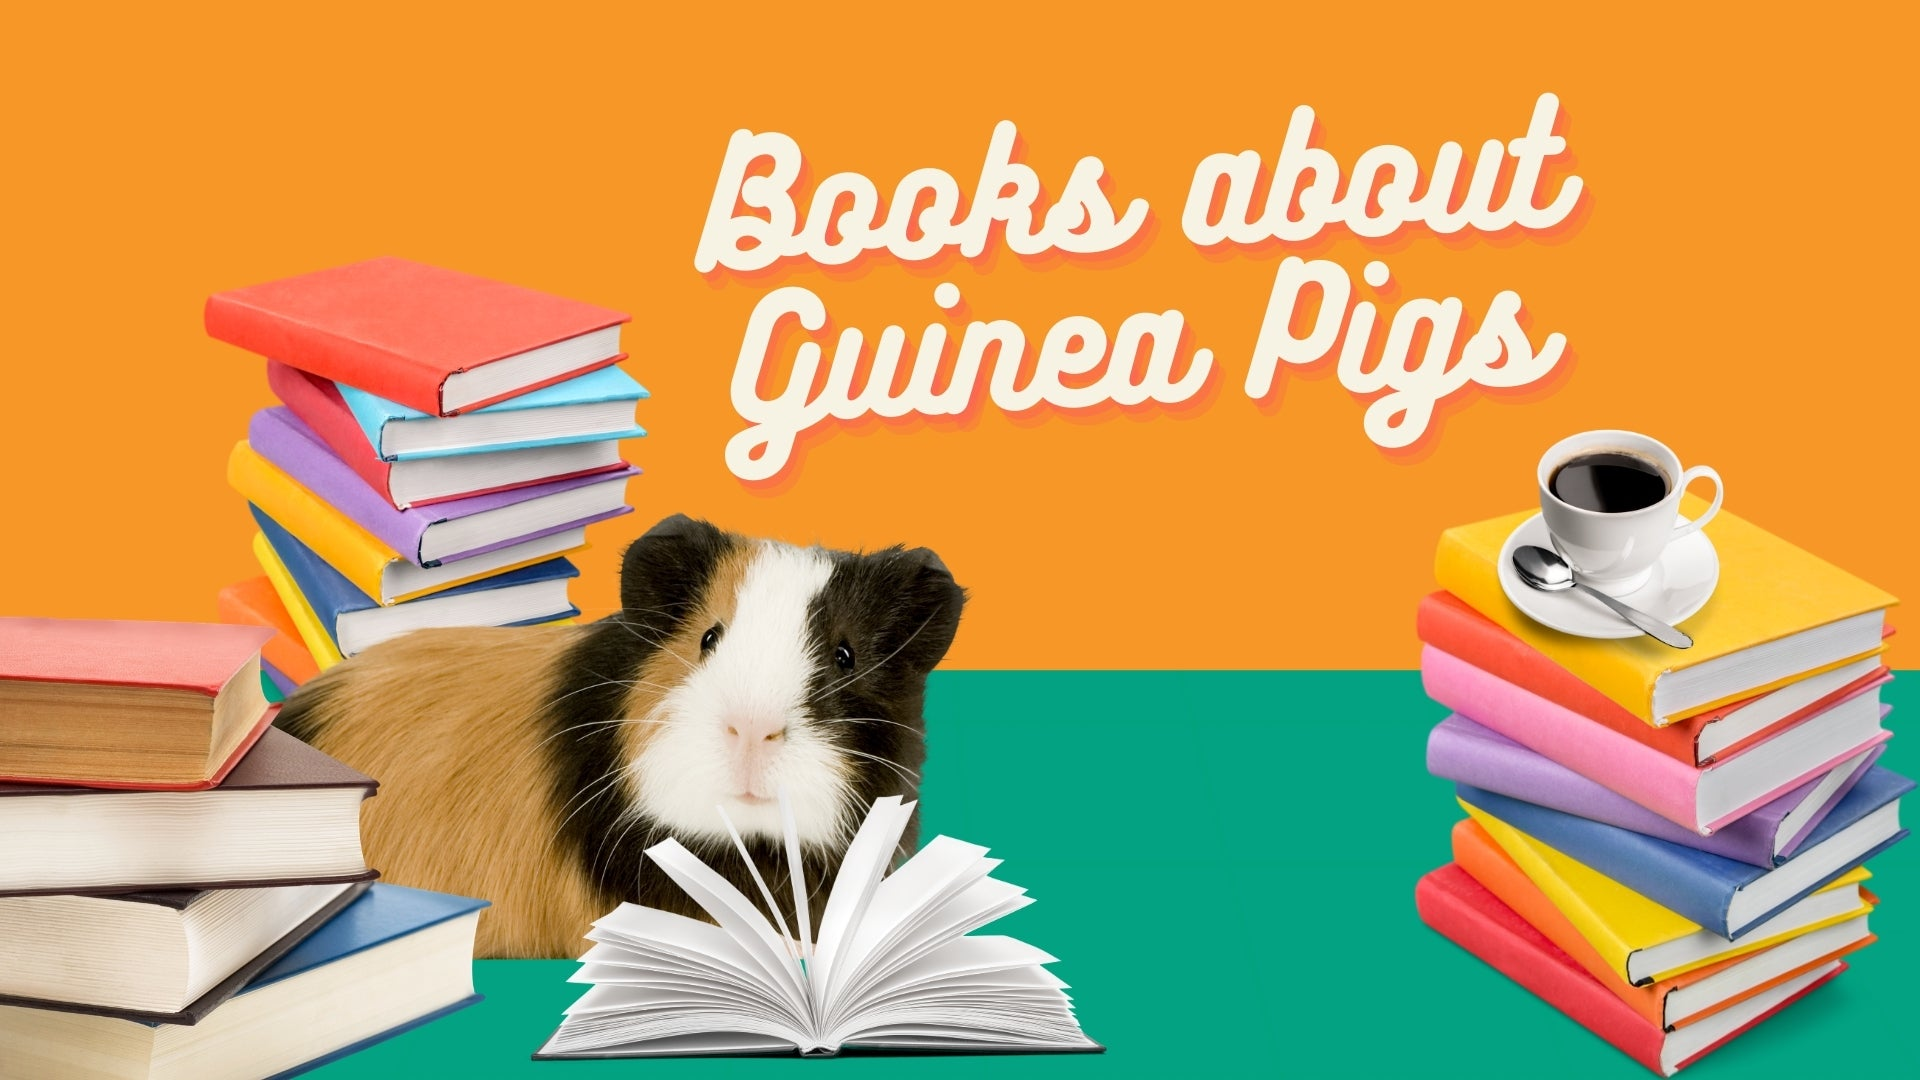 Fictional books and stories about guinea pigs kavee blog usa